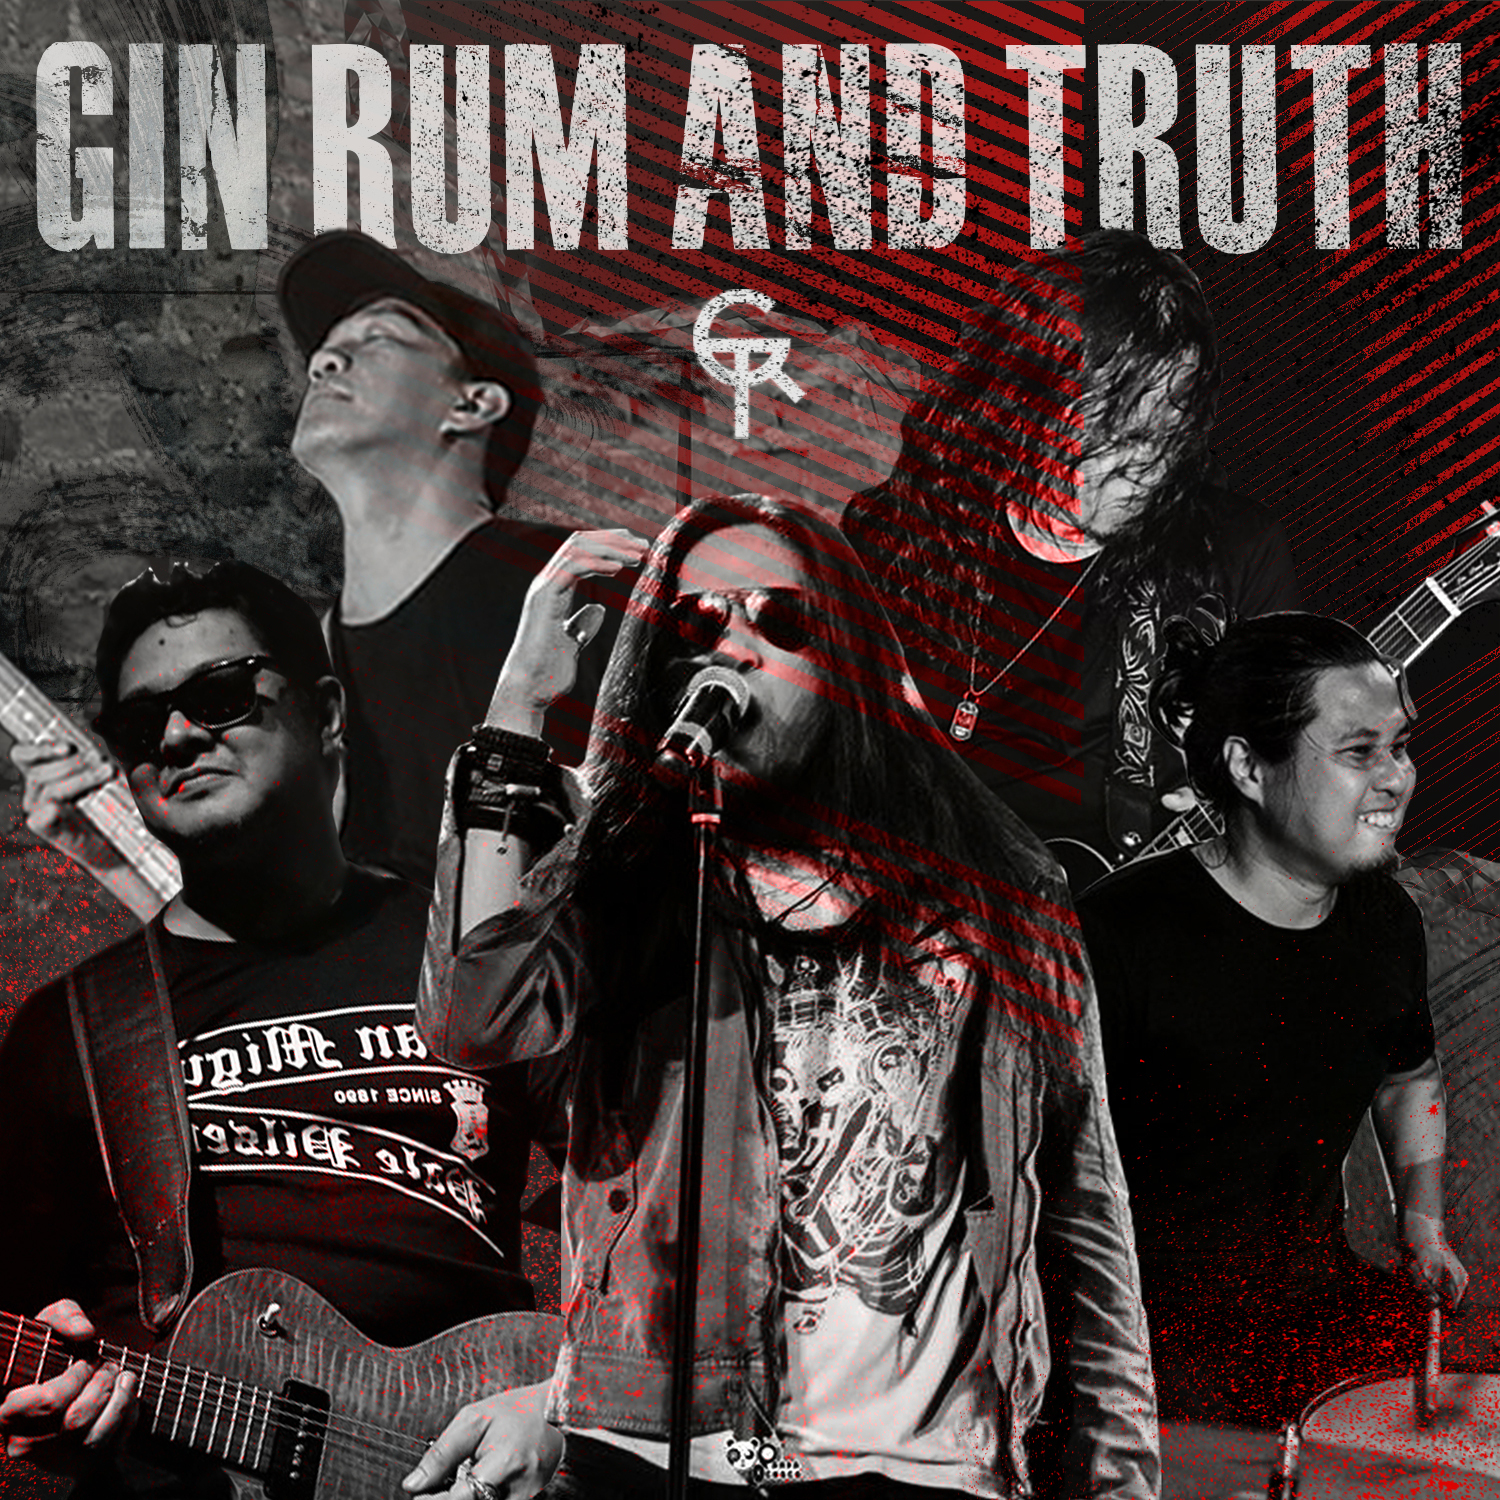 Gin Rum and Truth to release new single 'Kalayaan' on Philippine Independence Day